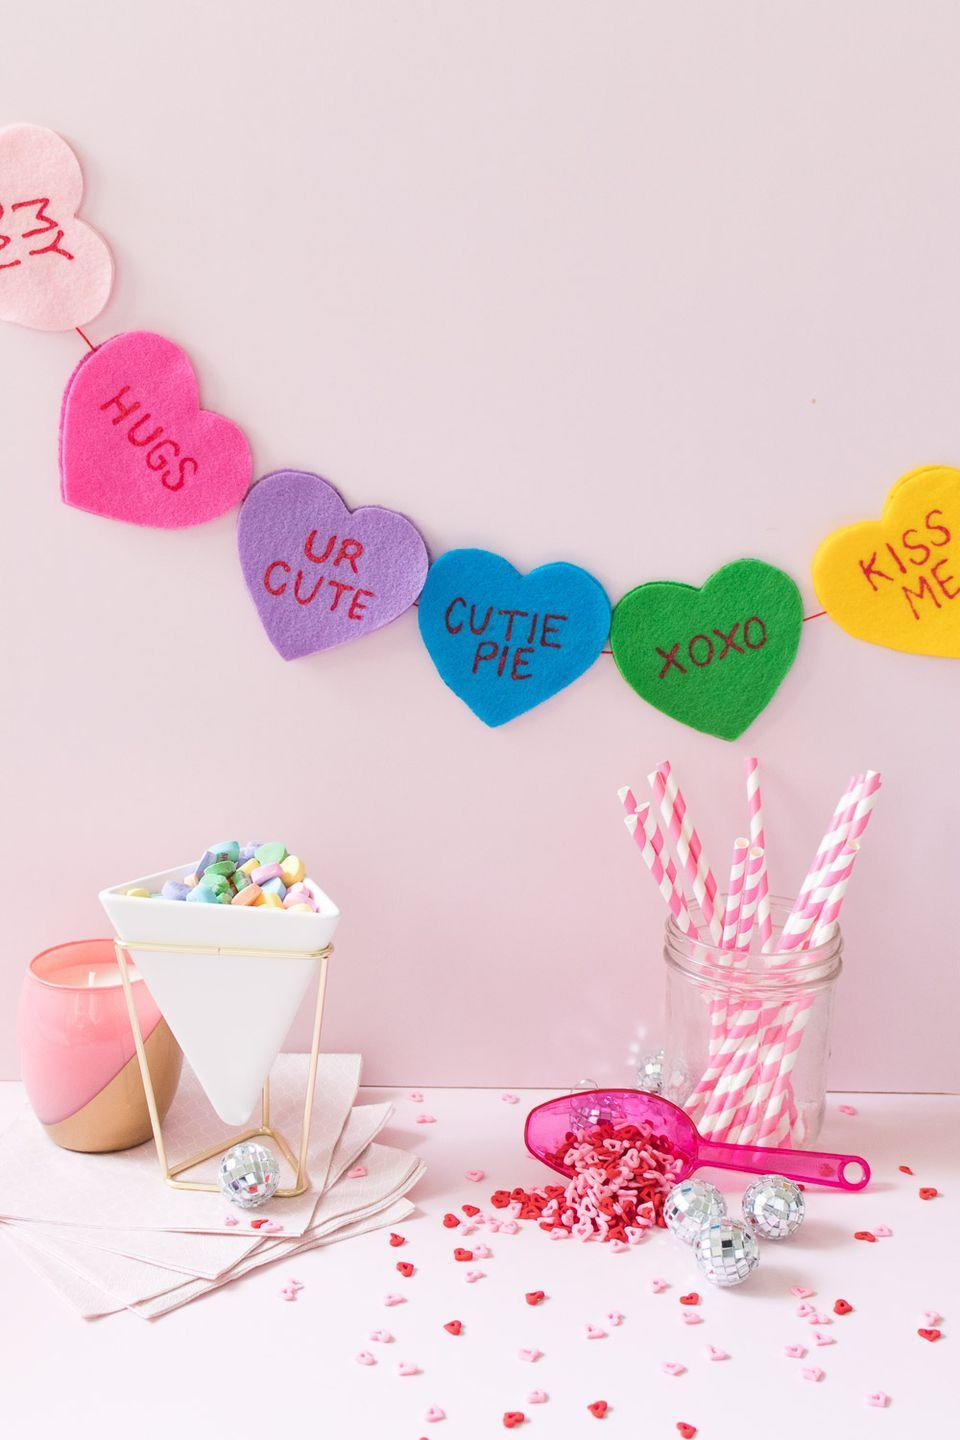 "<p>When you give store-bought candy hearts, you're limited to the messages in the box. But make this charming felt conversation heart banner with any custom messages you like. </p><p><em><a href=""https://www.clubcrafted.com/diy-felt-conversation-heart-banner-for-valentines-day/"" rel=""nofollow noopener"" target=""_blank"" data-ylk=""slk:Get the how-to at Club Crafted»"" class=""link rapid-noclick-resp"">Get the how-to at Club Crafted»</a></em><br></p>"